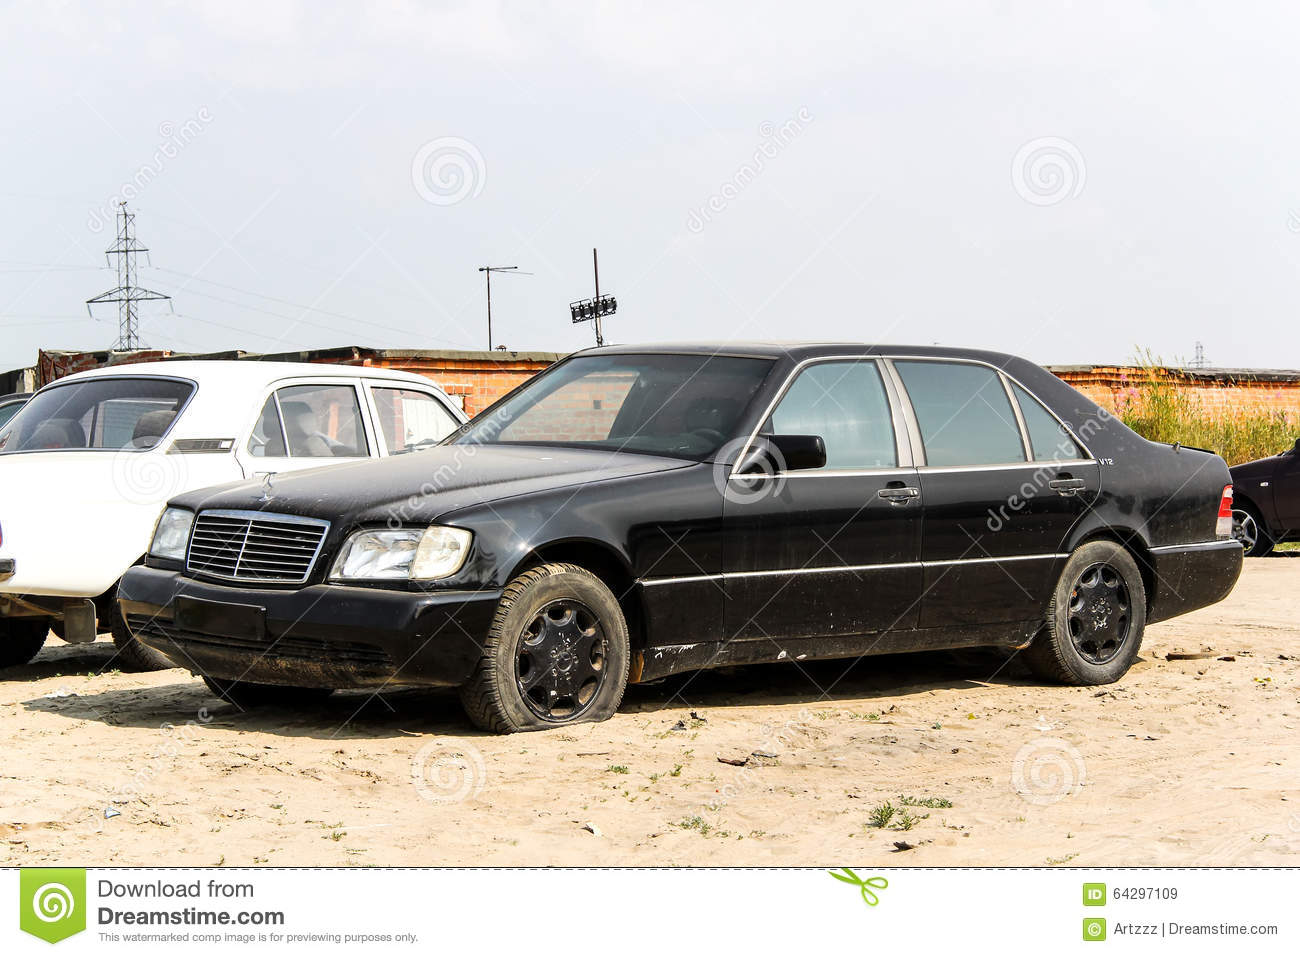 Mercedes benz w140 s class editorial stock image image of for Mercedes benz stock